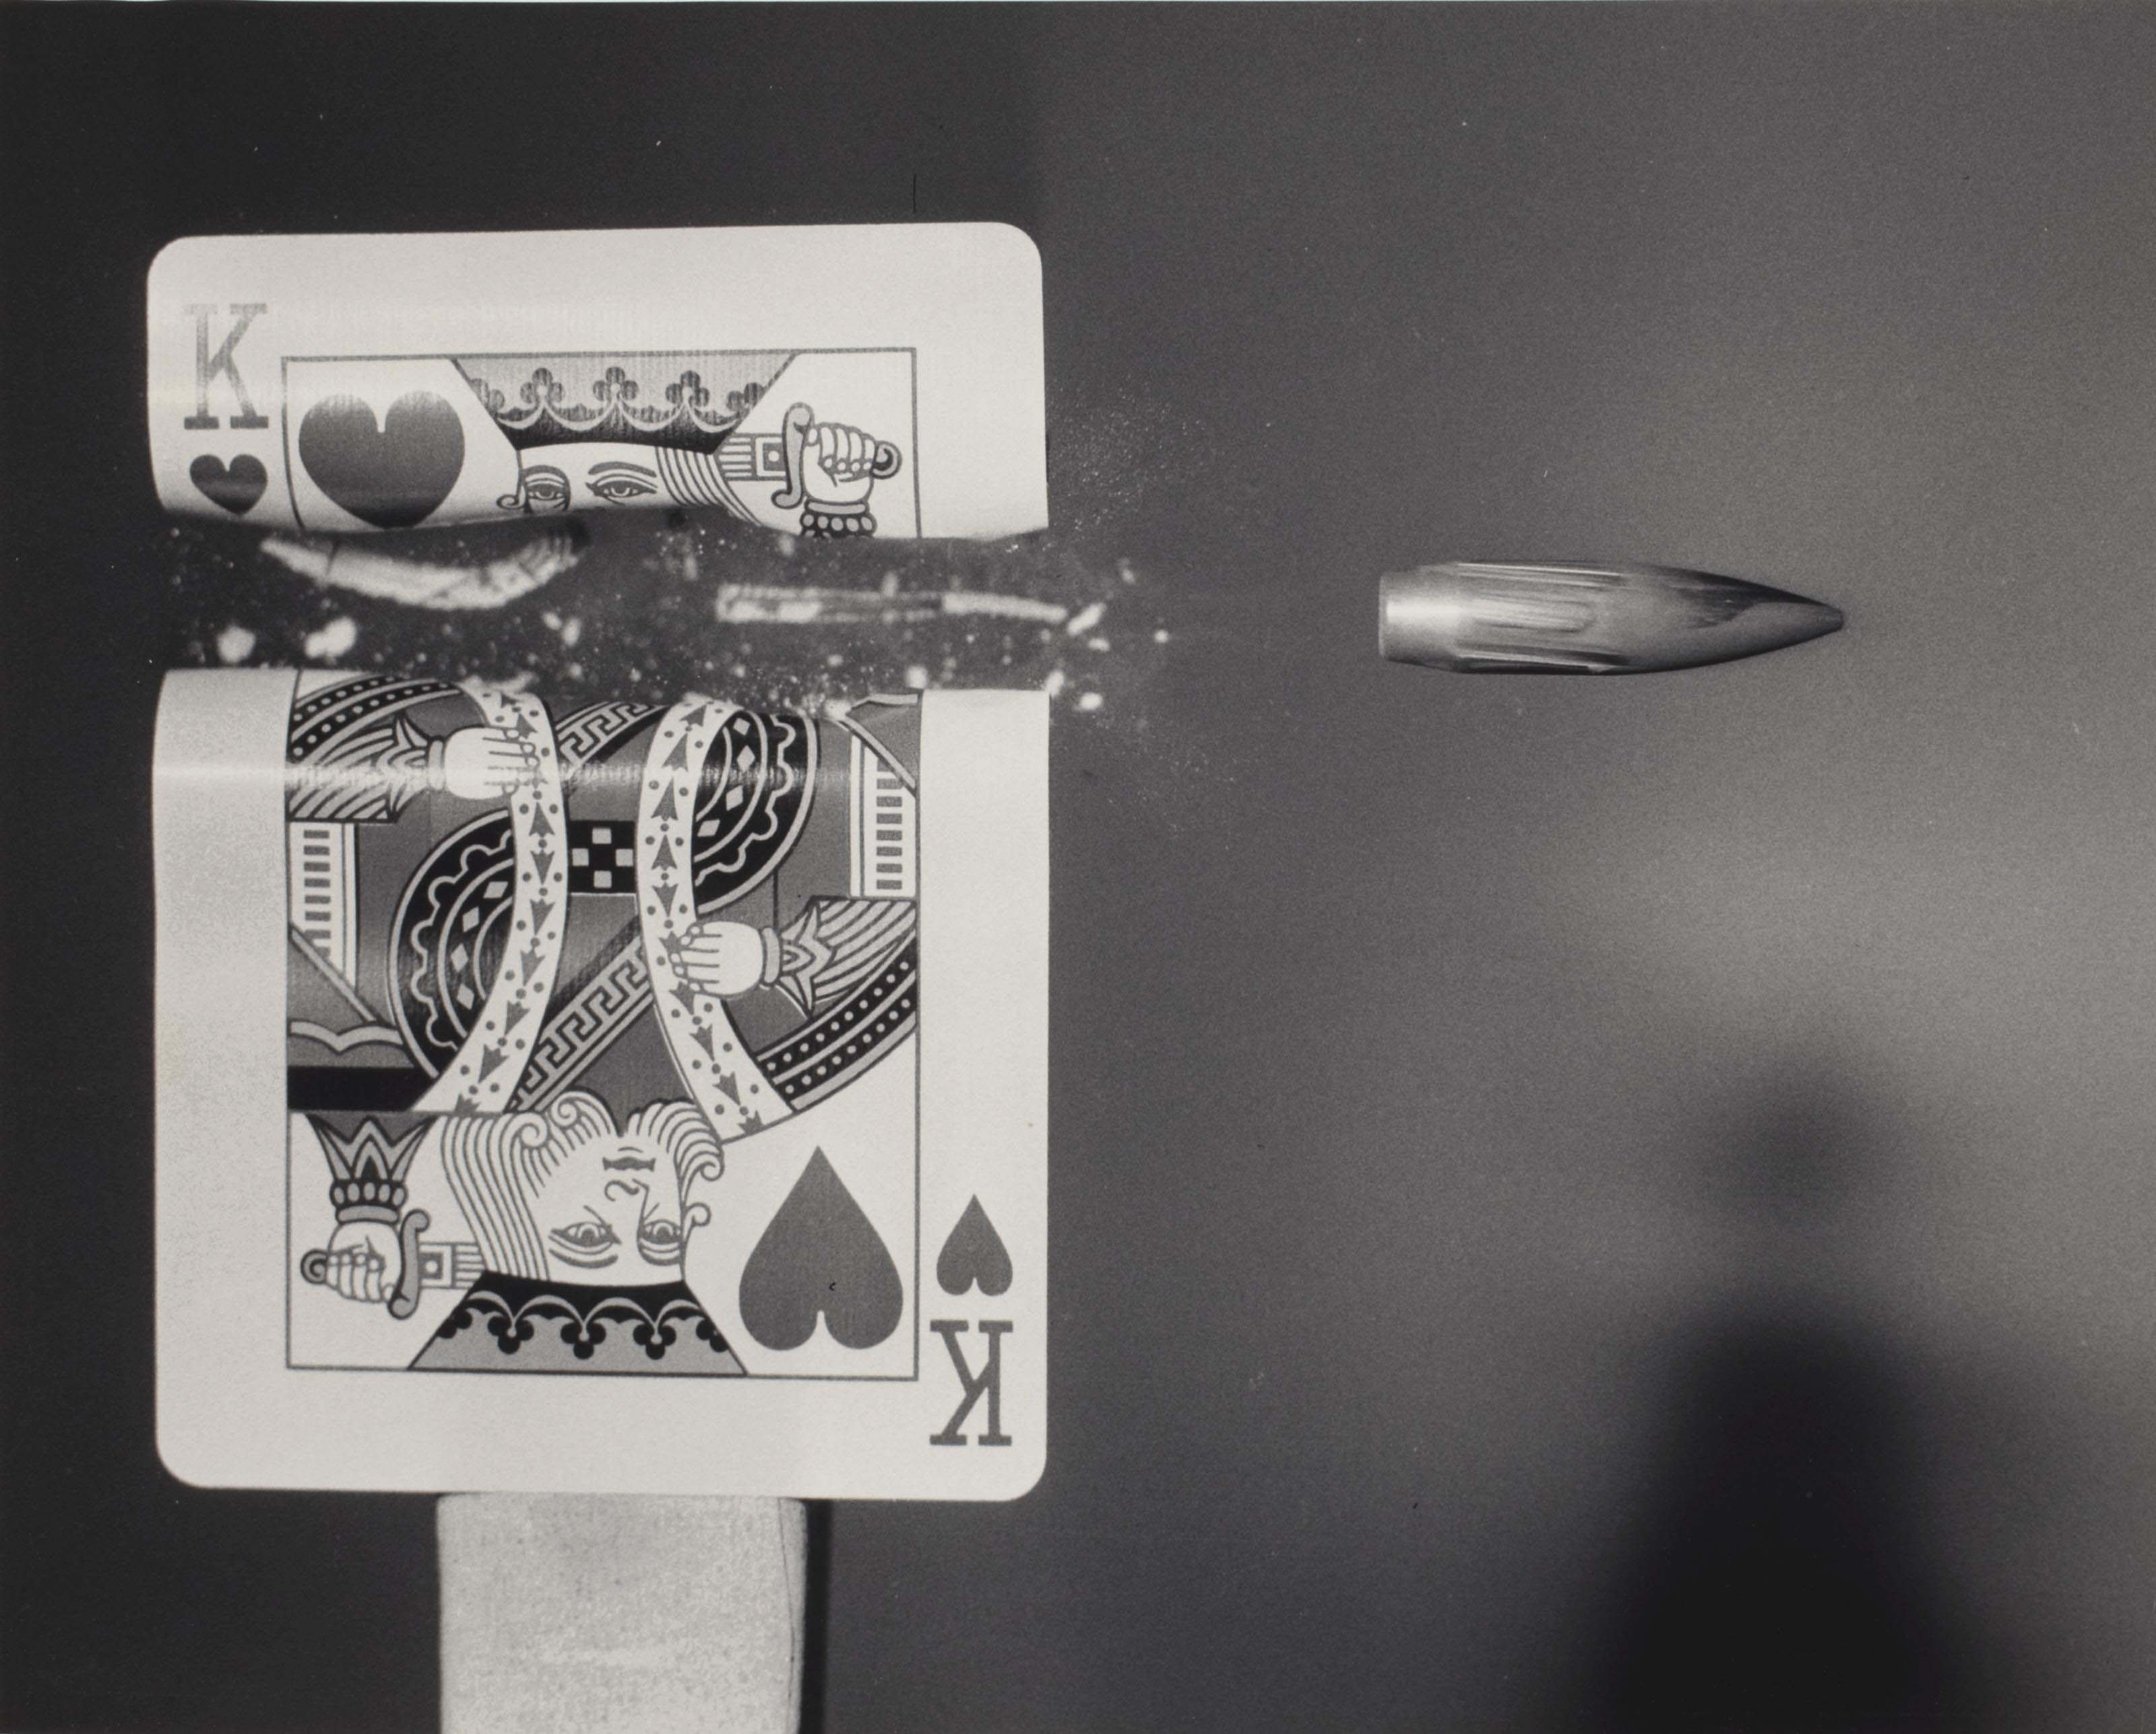 Cutting the card quickly, 1980